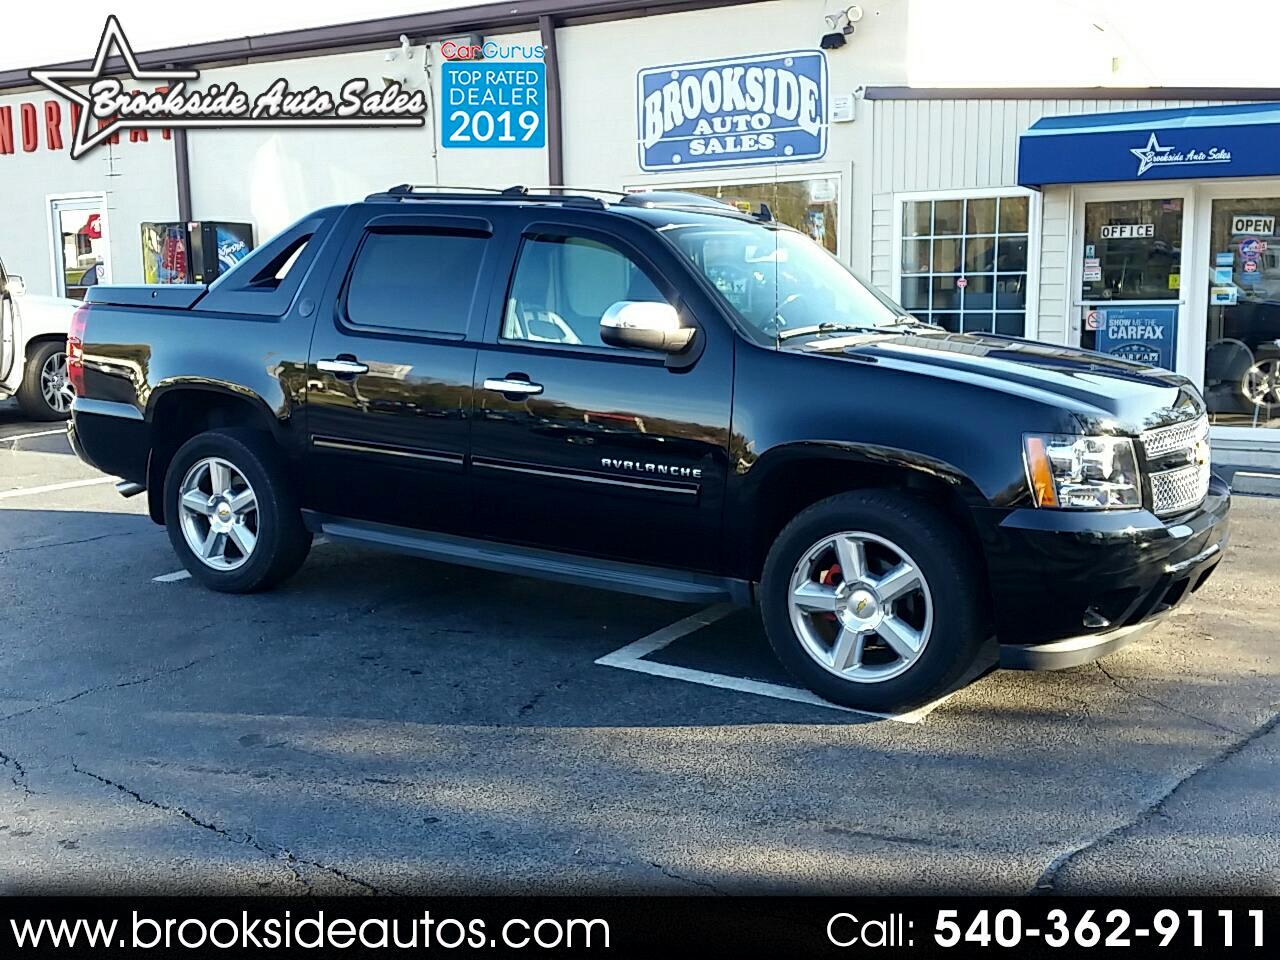 2013 Chevrolet Avalanche 4WD Crew Cab LT